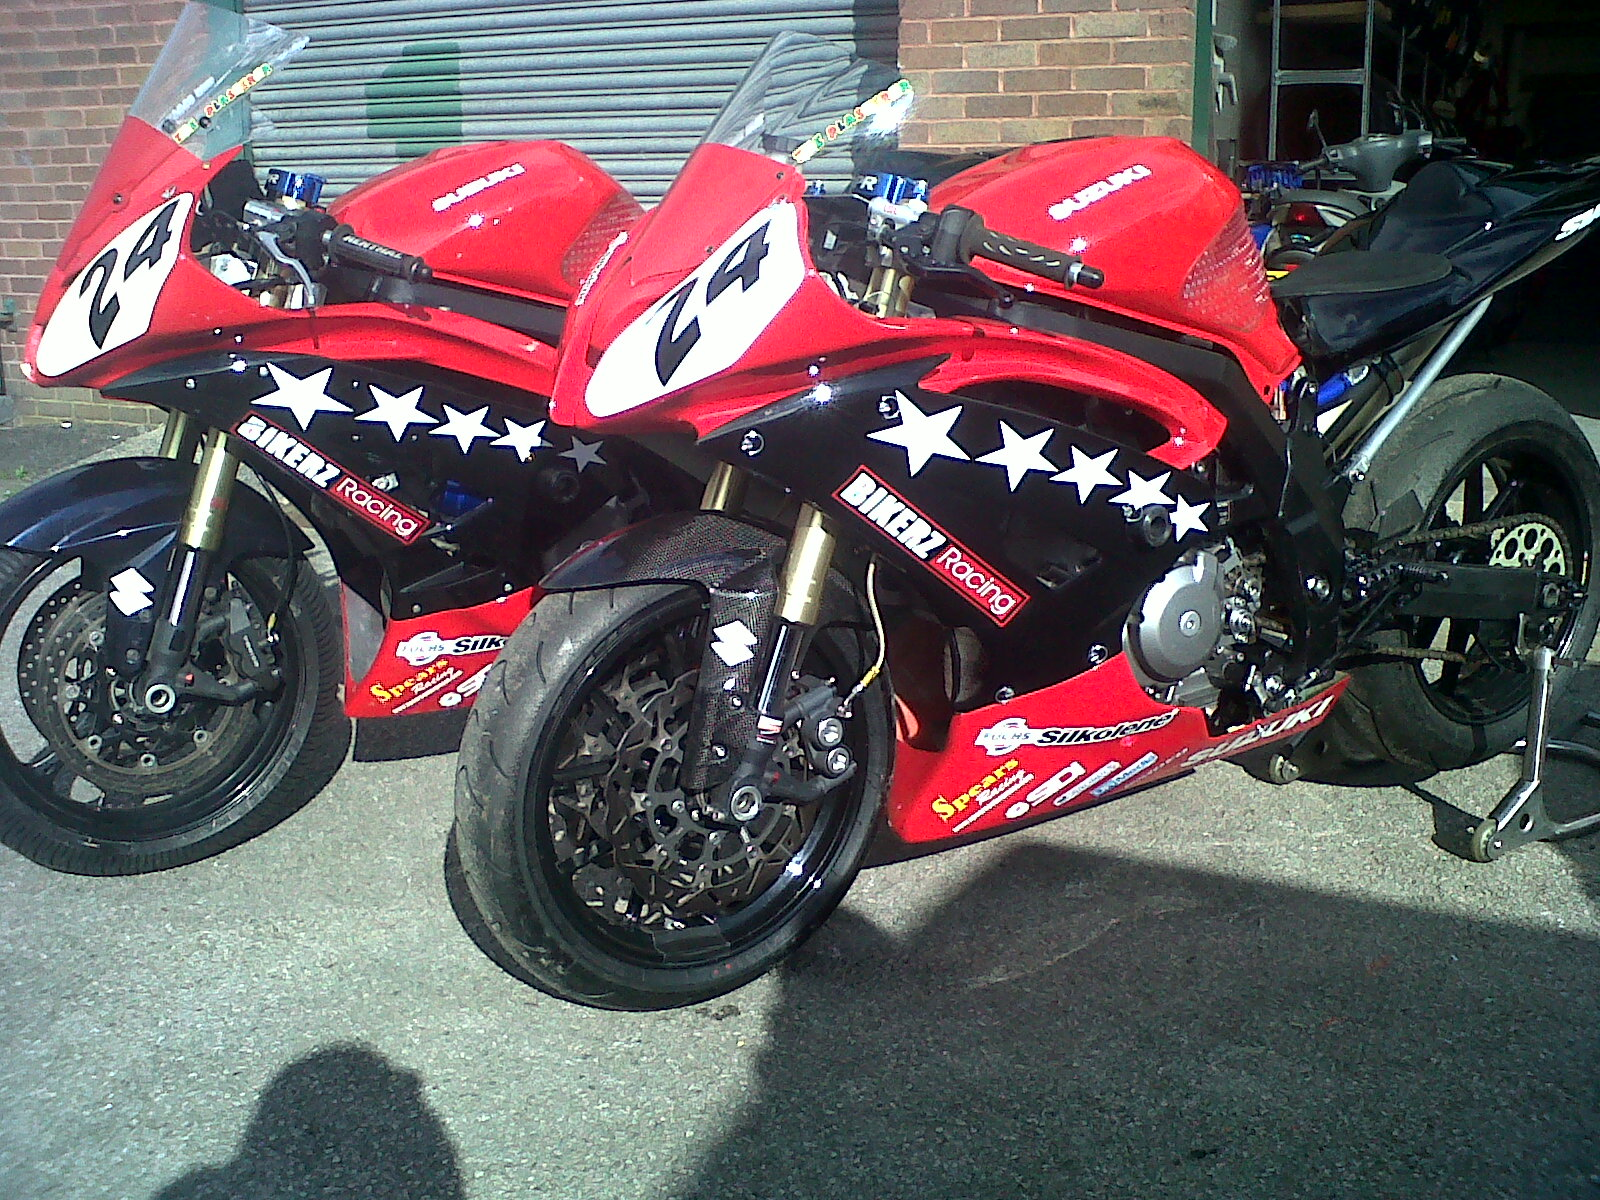 Bikerz Racing SV650 Supertwins